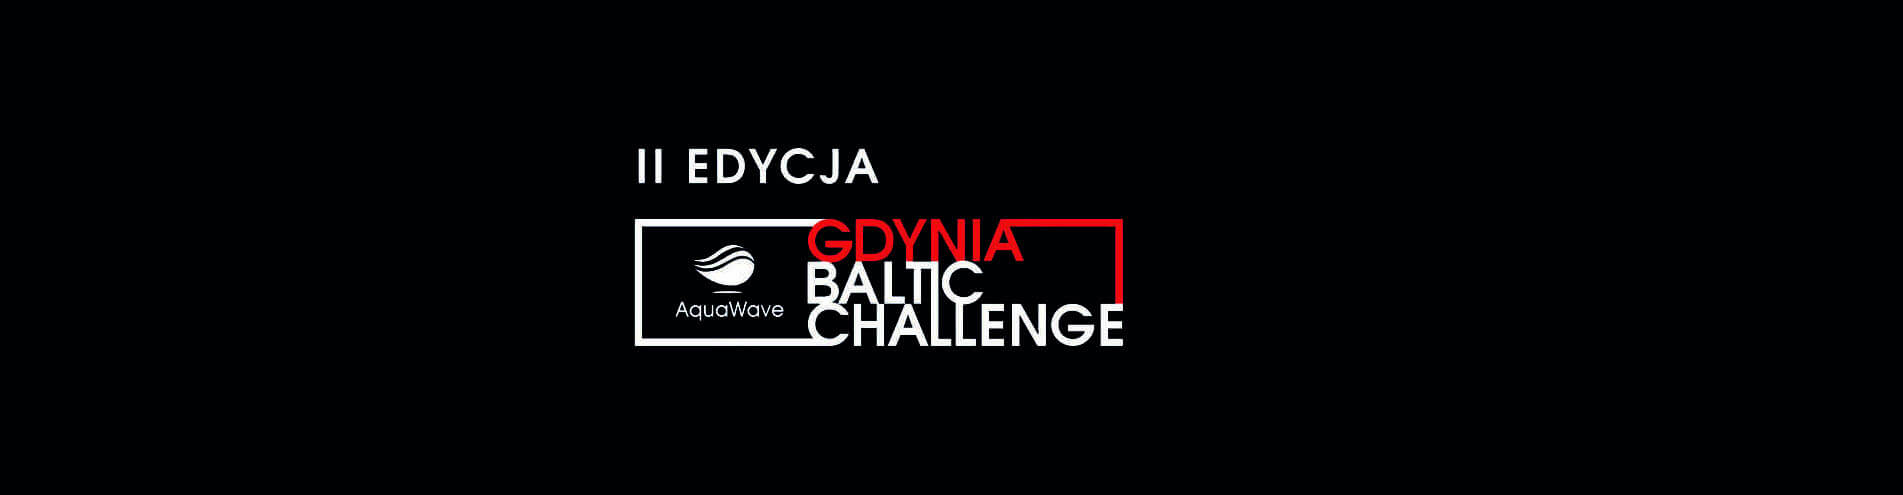 Gdynia Baltic Challenge by AquaWave 2019